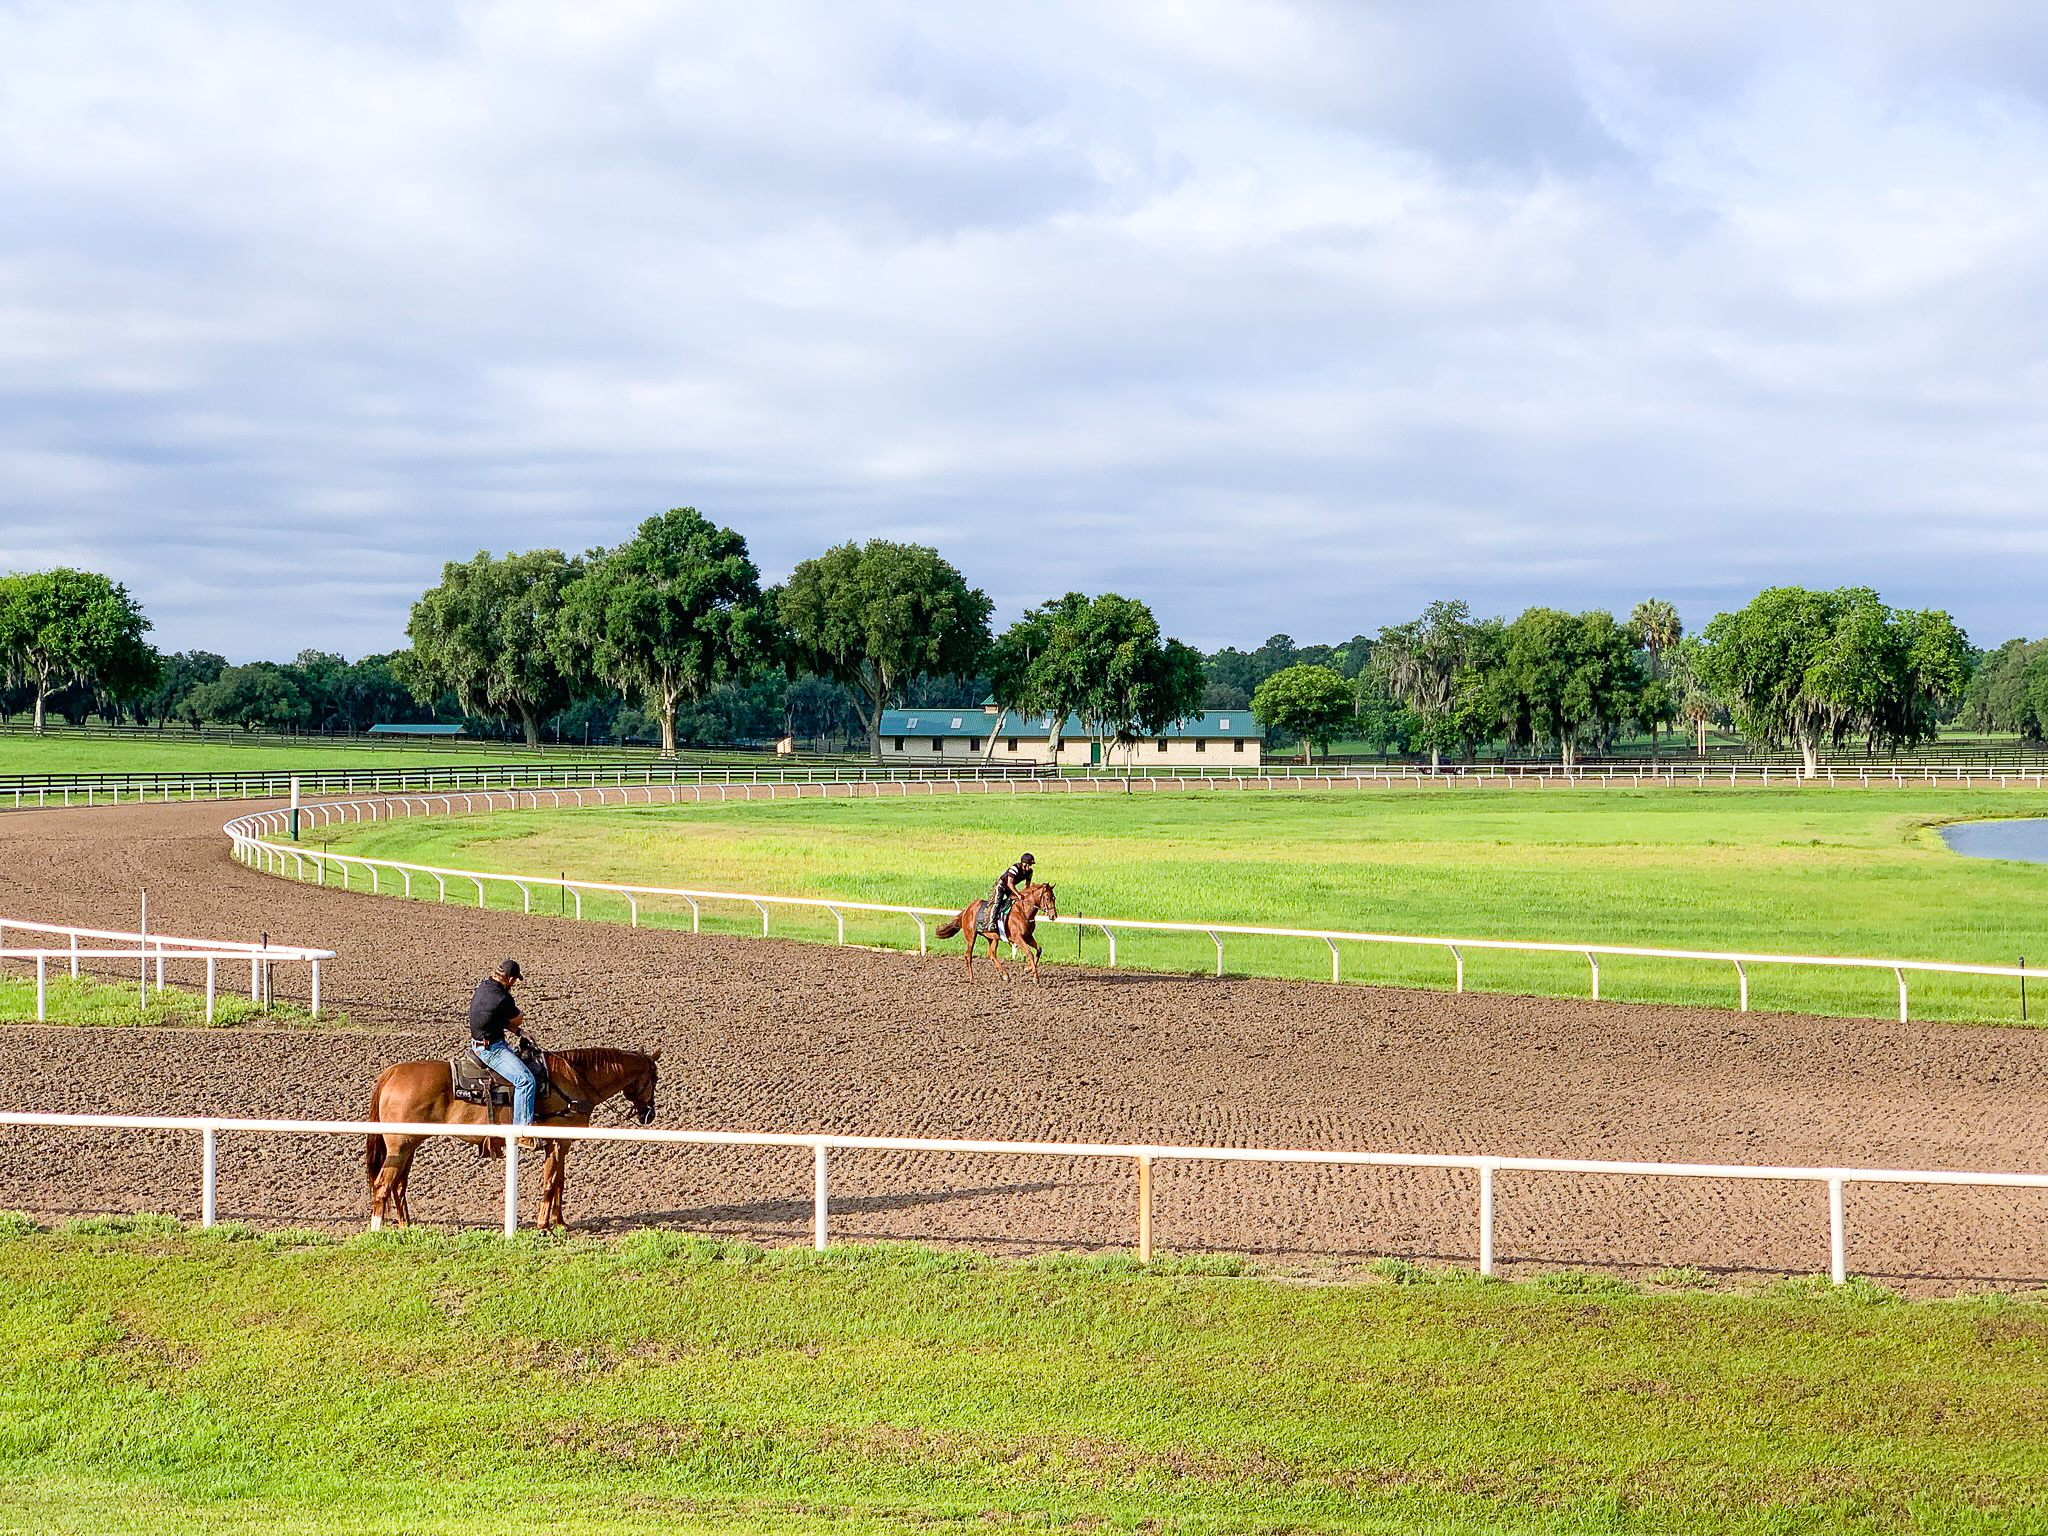 Dirt Training Track - The 5/8ths dirt training track is cared and tended to as if it were a living, breathing animal, consistently being evaluated for what it might need.